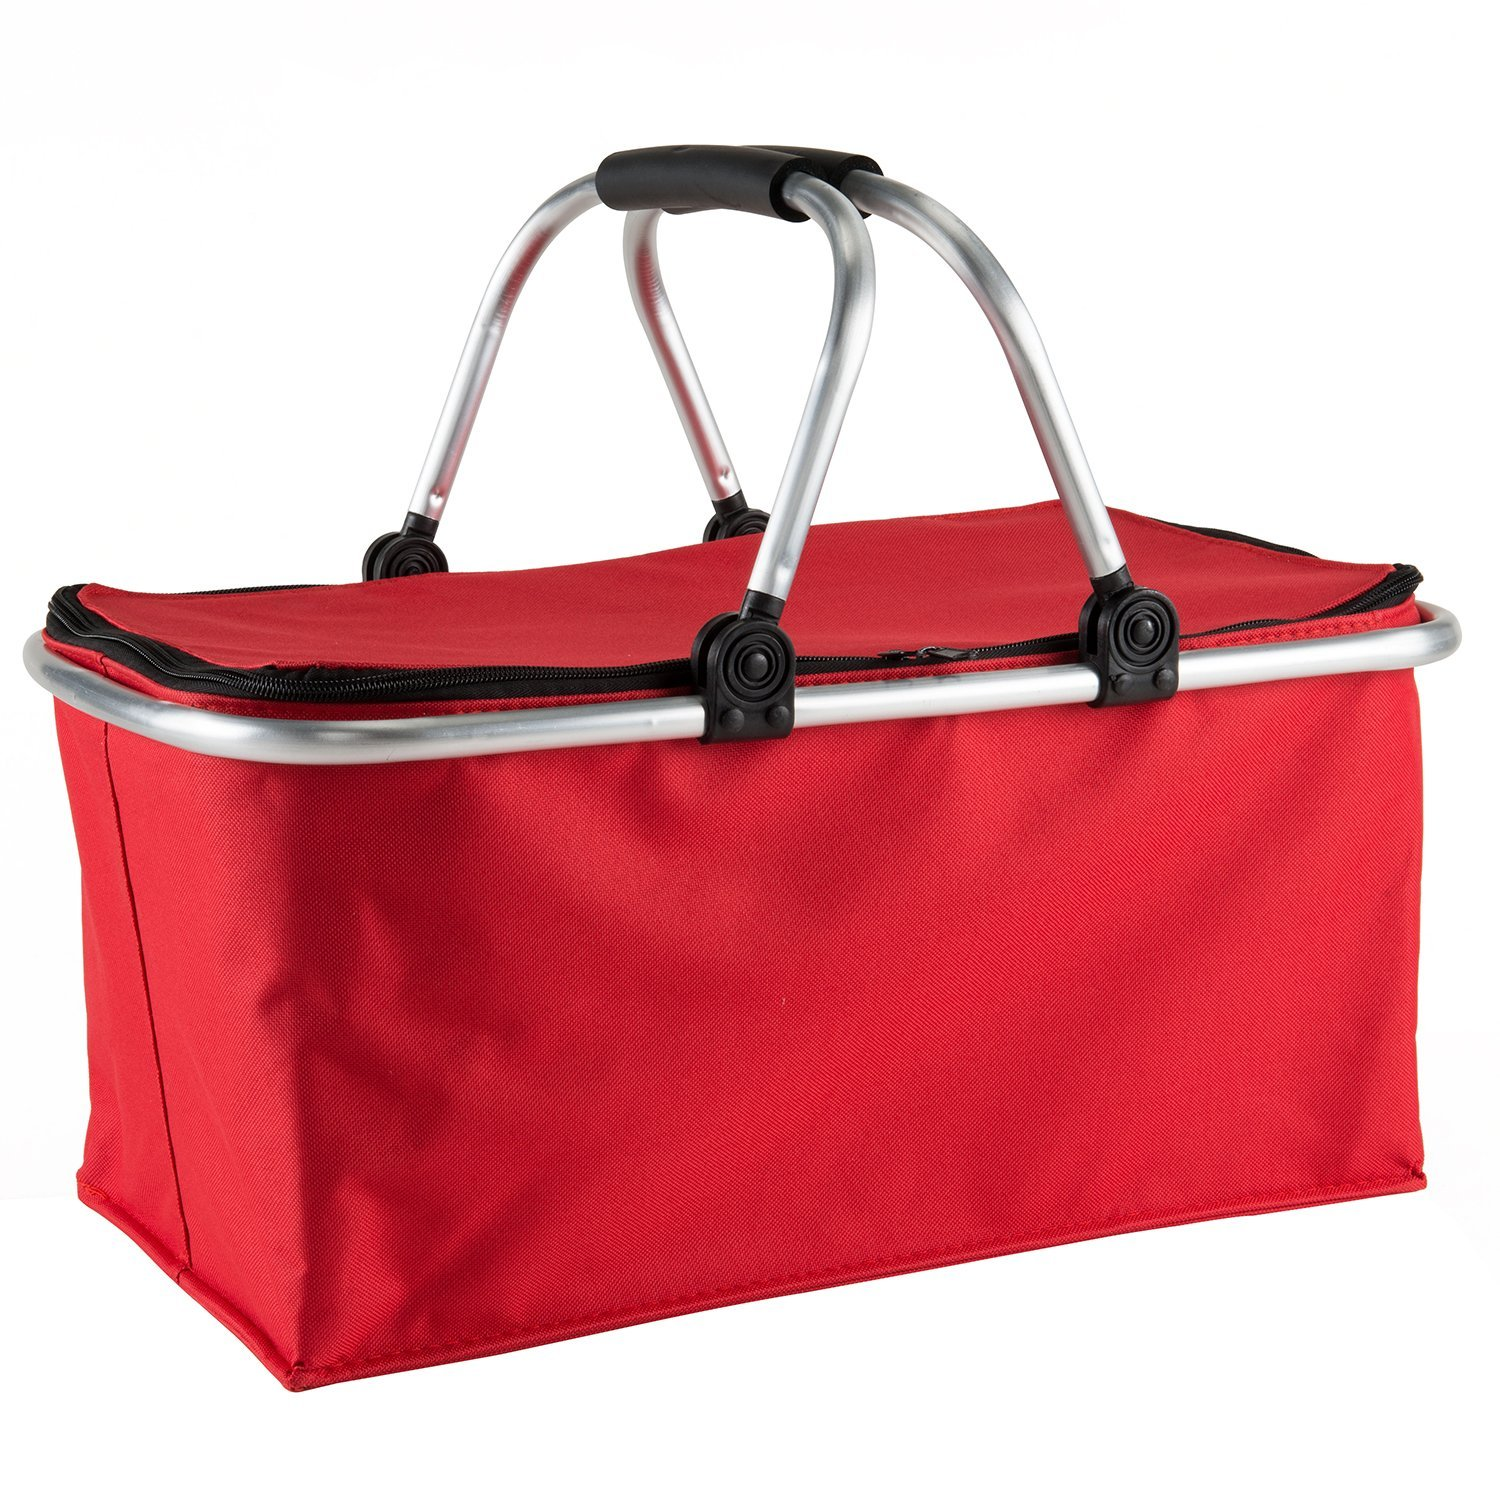 Foldable Insulated Shopper Basket with Round Aluminium Handle